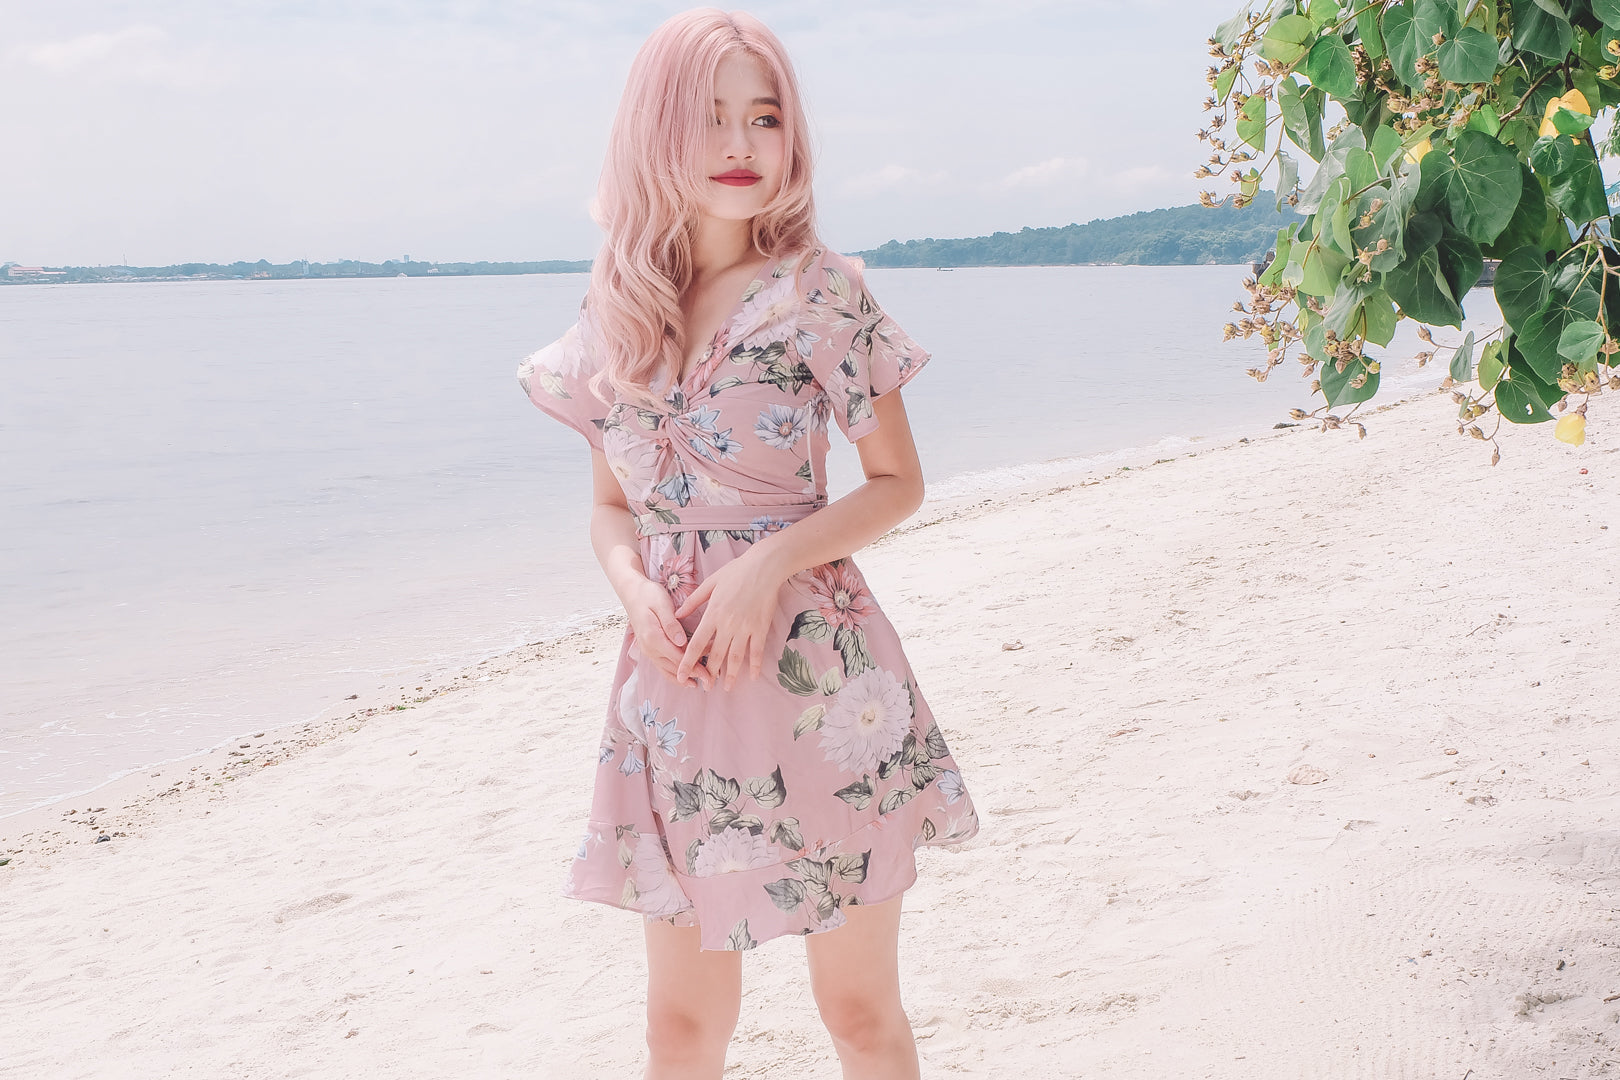 Blakely Floral Ruffled Dress in Pink